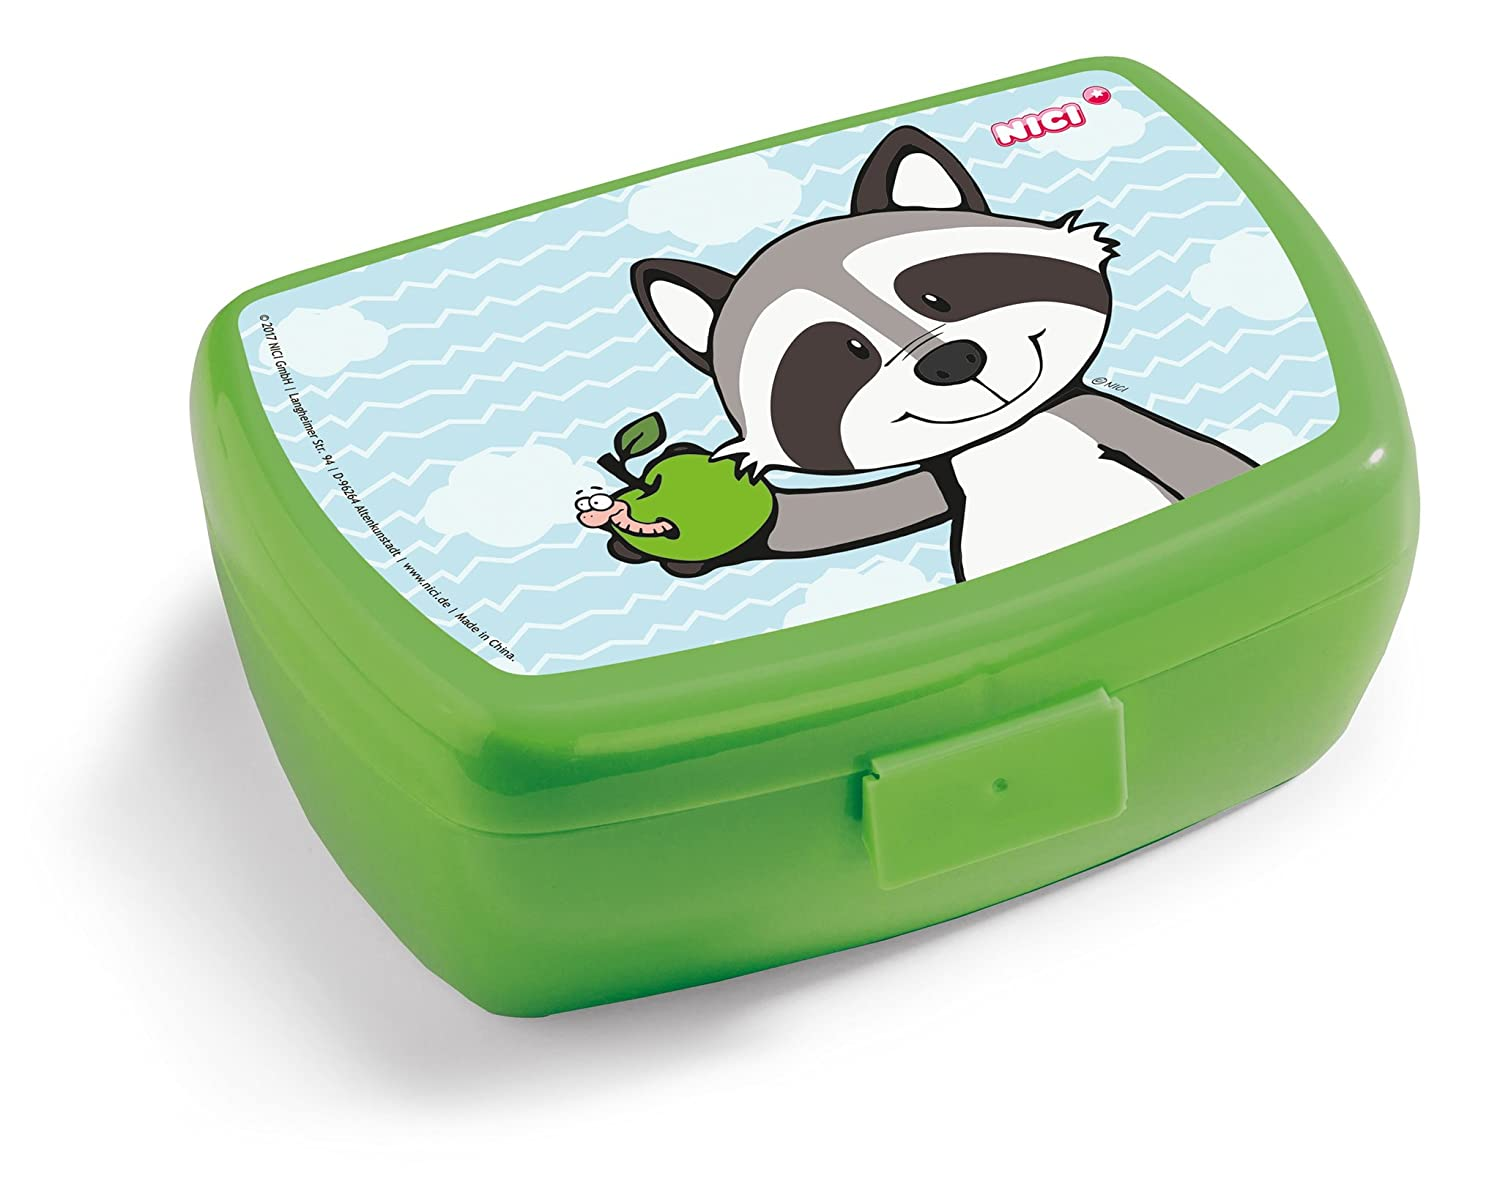 Nici 41874 Forest Friends Brotdose mit Waschbär Rod, 17 x 12 x 6.8 cm